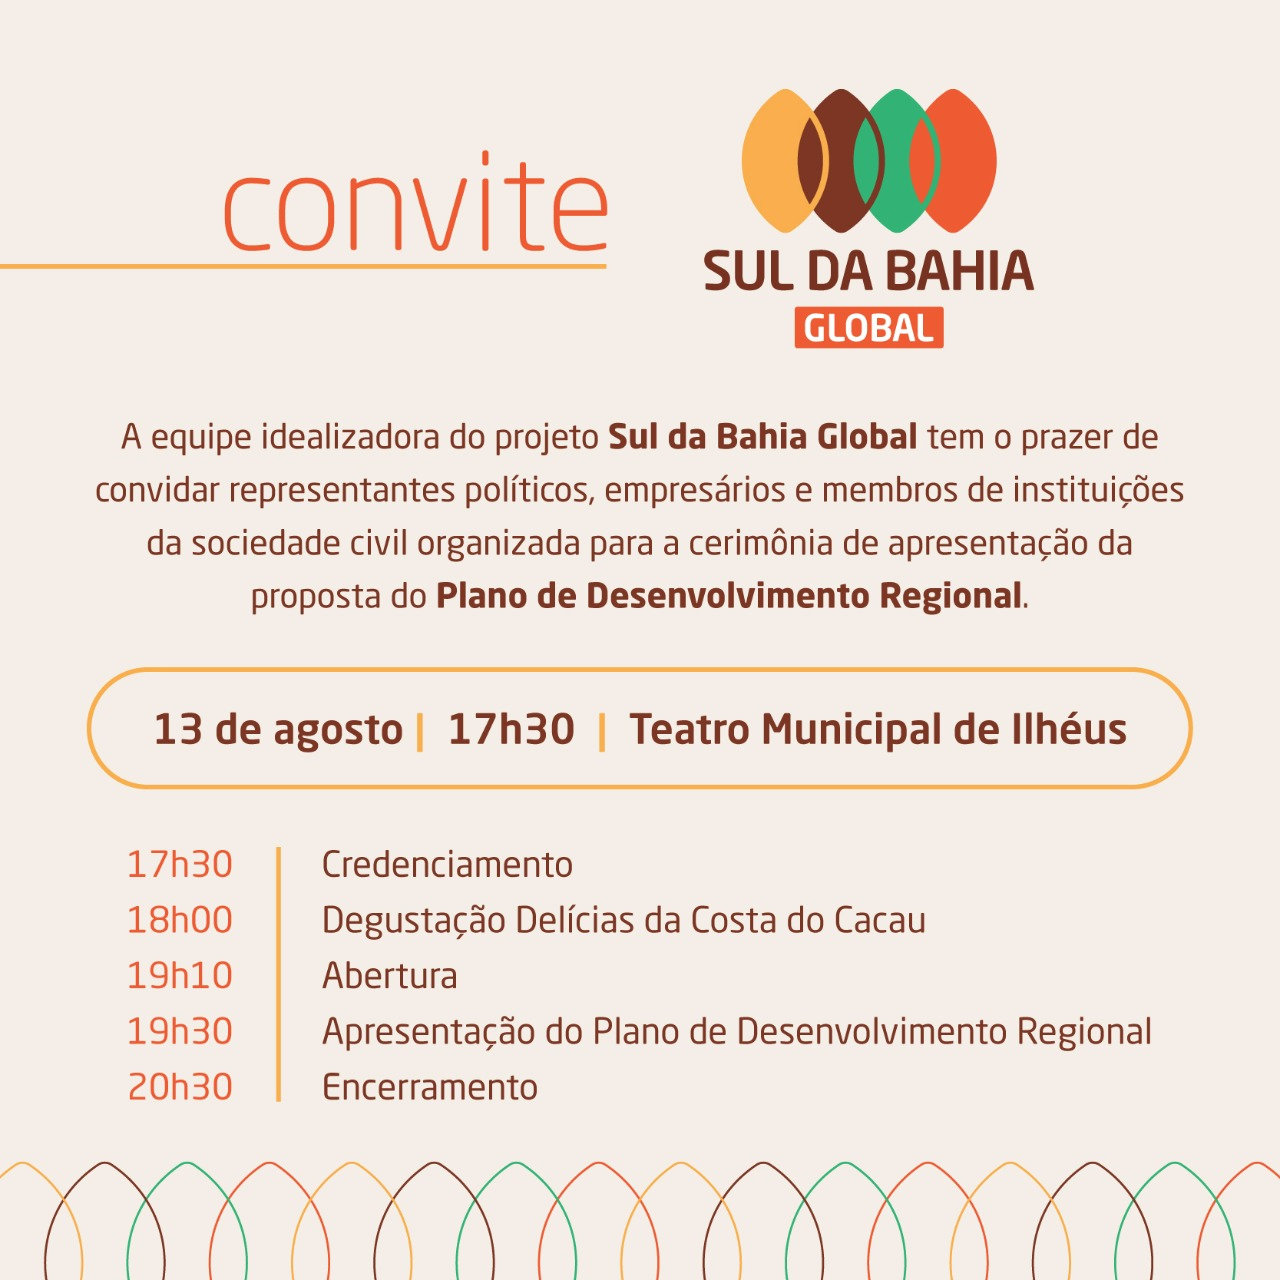 sul_da_bahia_global